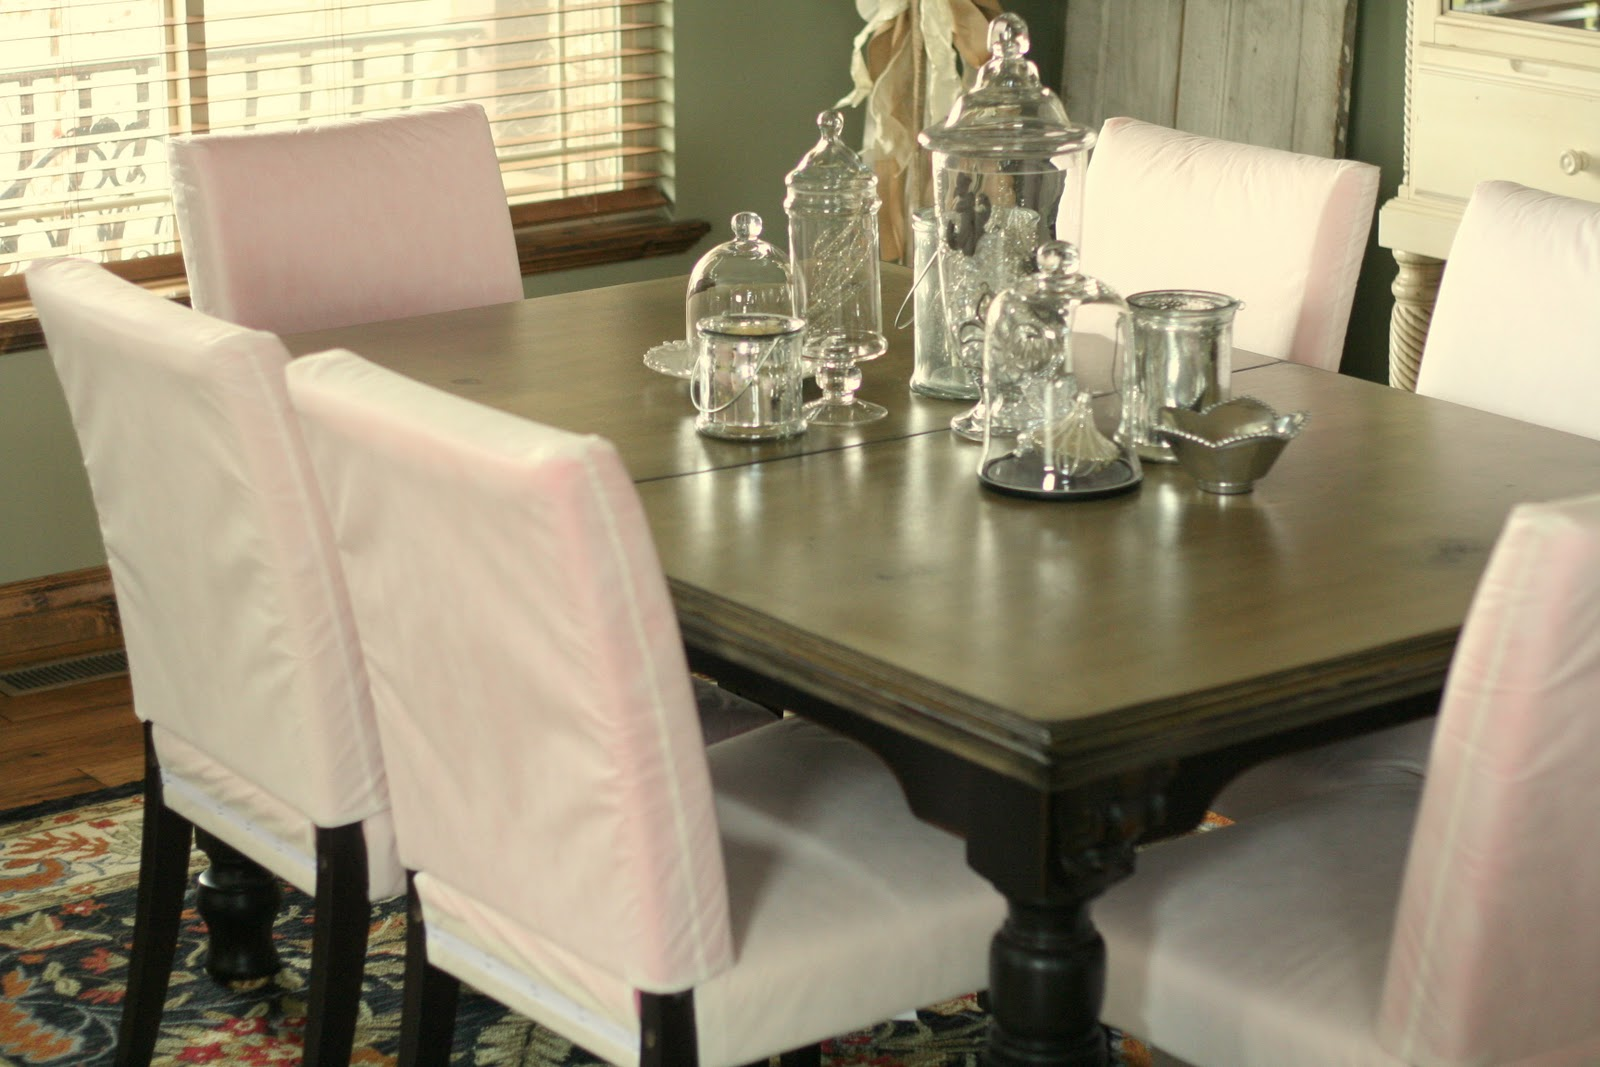 Kitchen amp Dining Chair Covers Youll Love  Wayfair